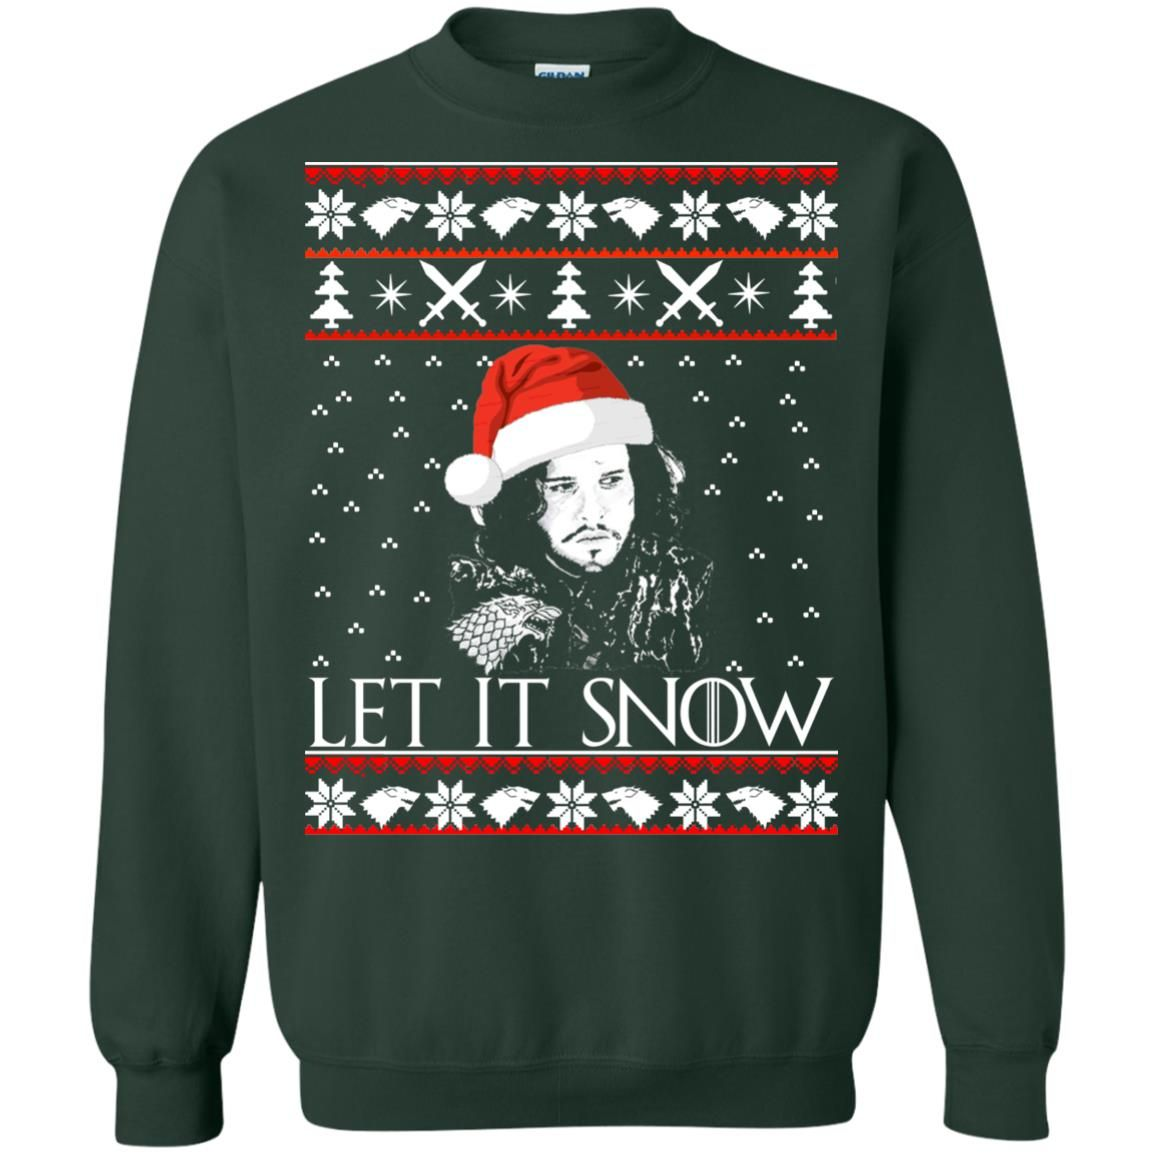 image 943 - Game of Thrones: Jon Snow let it Snow Christmas sweater, long sleeve